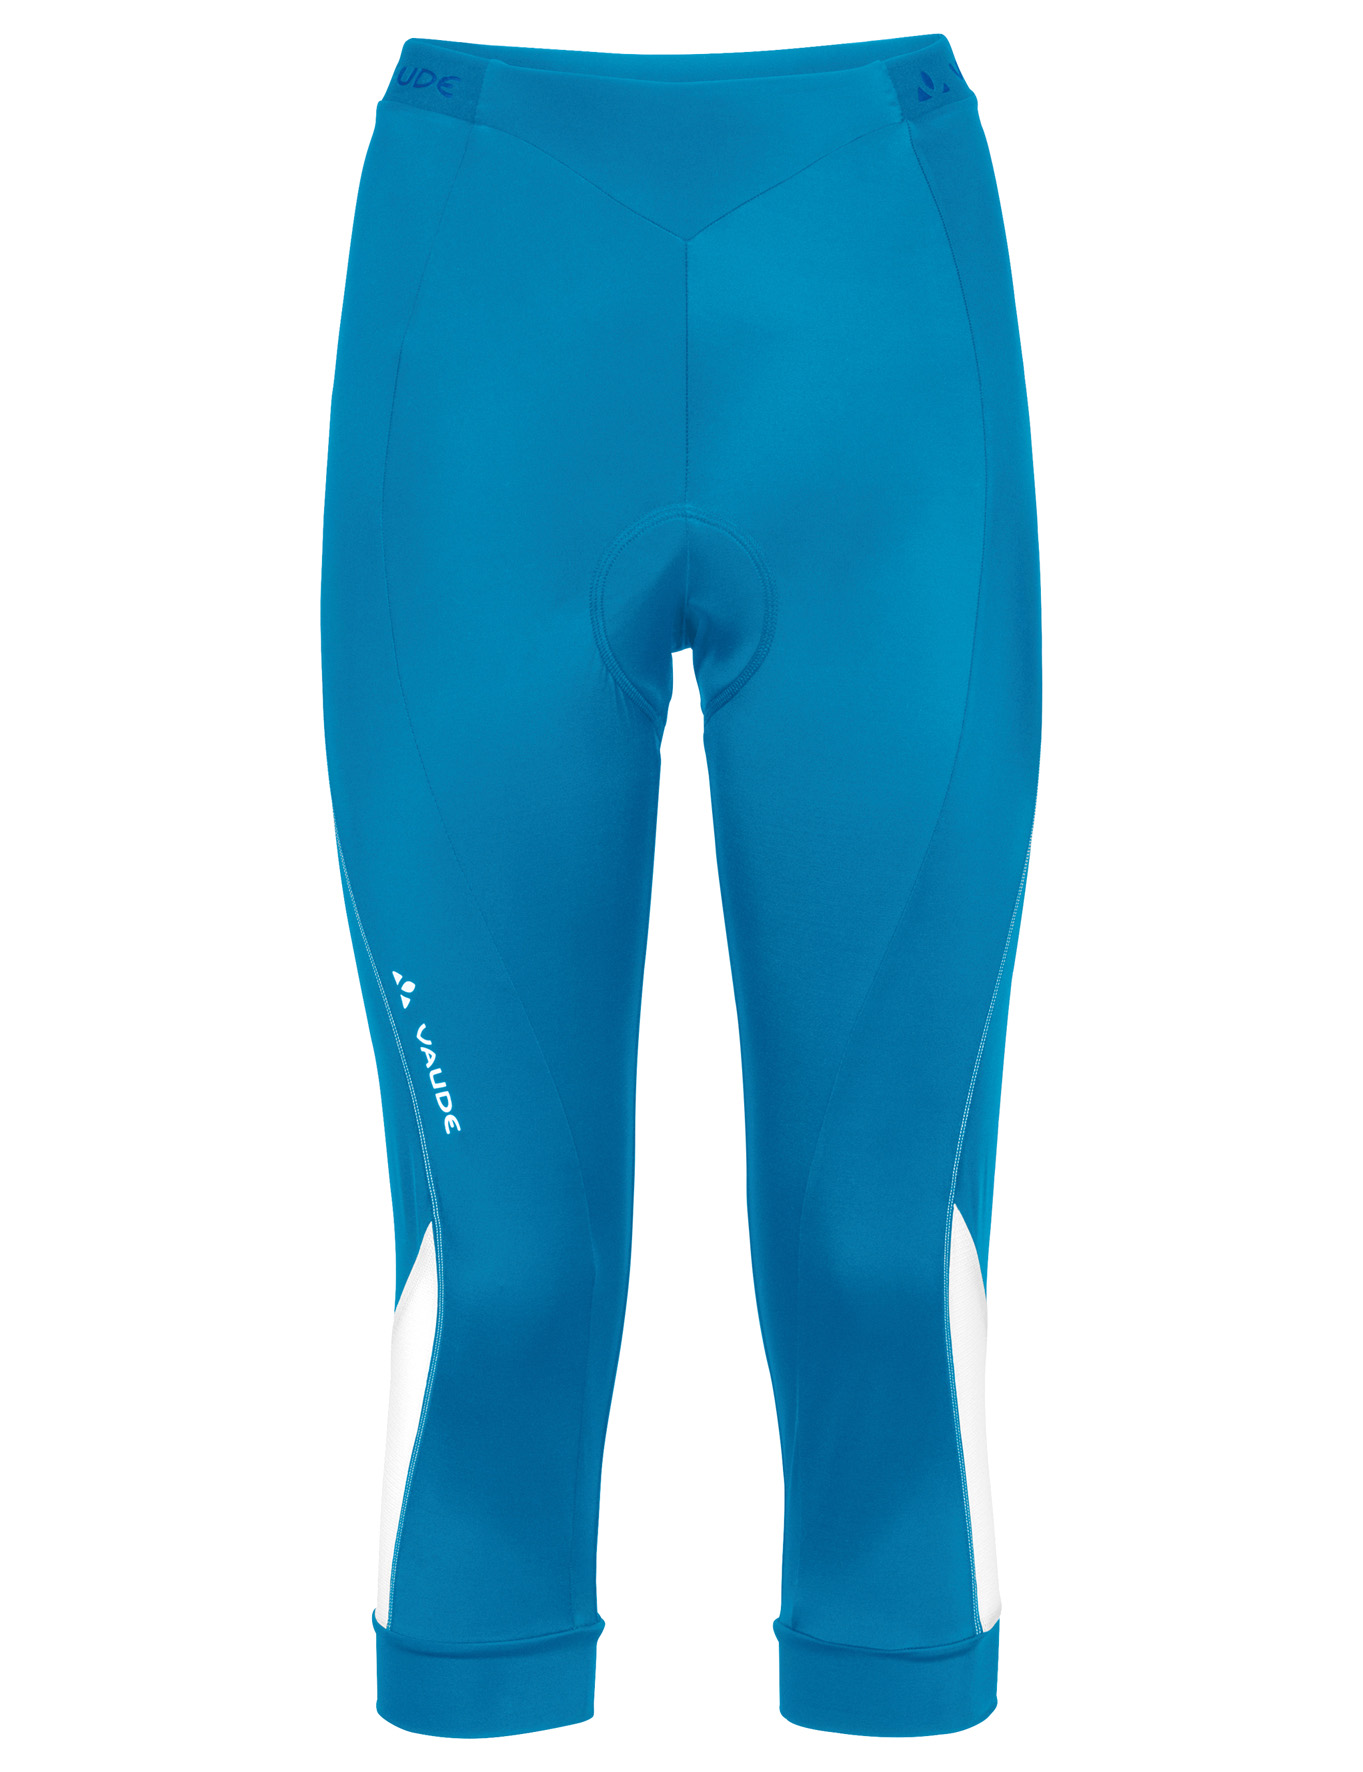 VAUDE Women´s Advanced 3/4 Pants II spring blue Größe 34 - schneider-sports